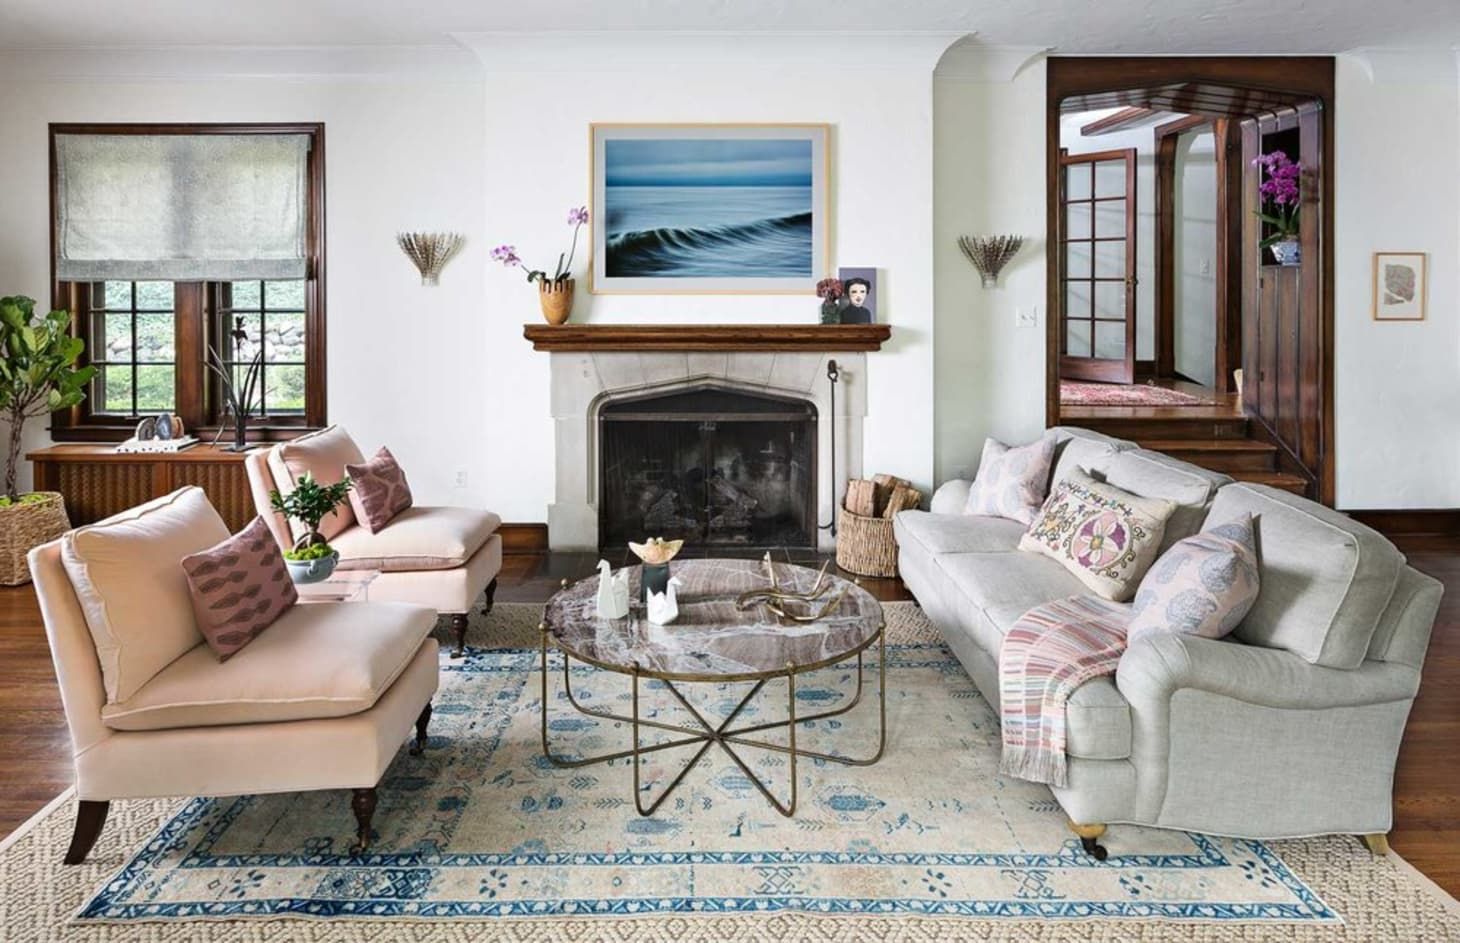 Design Ideas From Rooms That Nail The Layered Rug Look